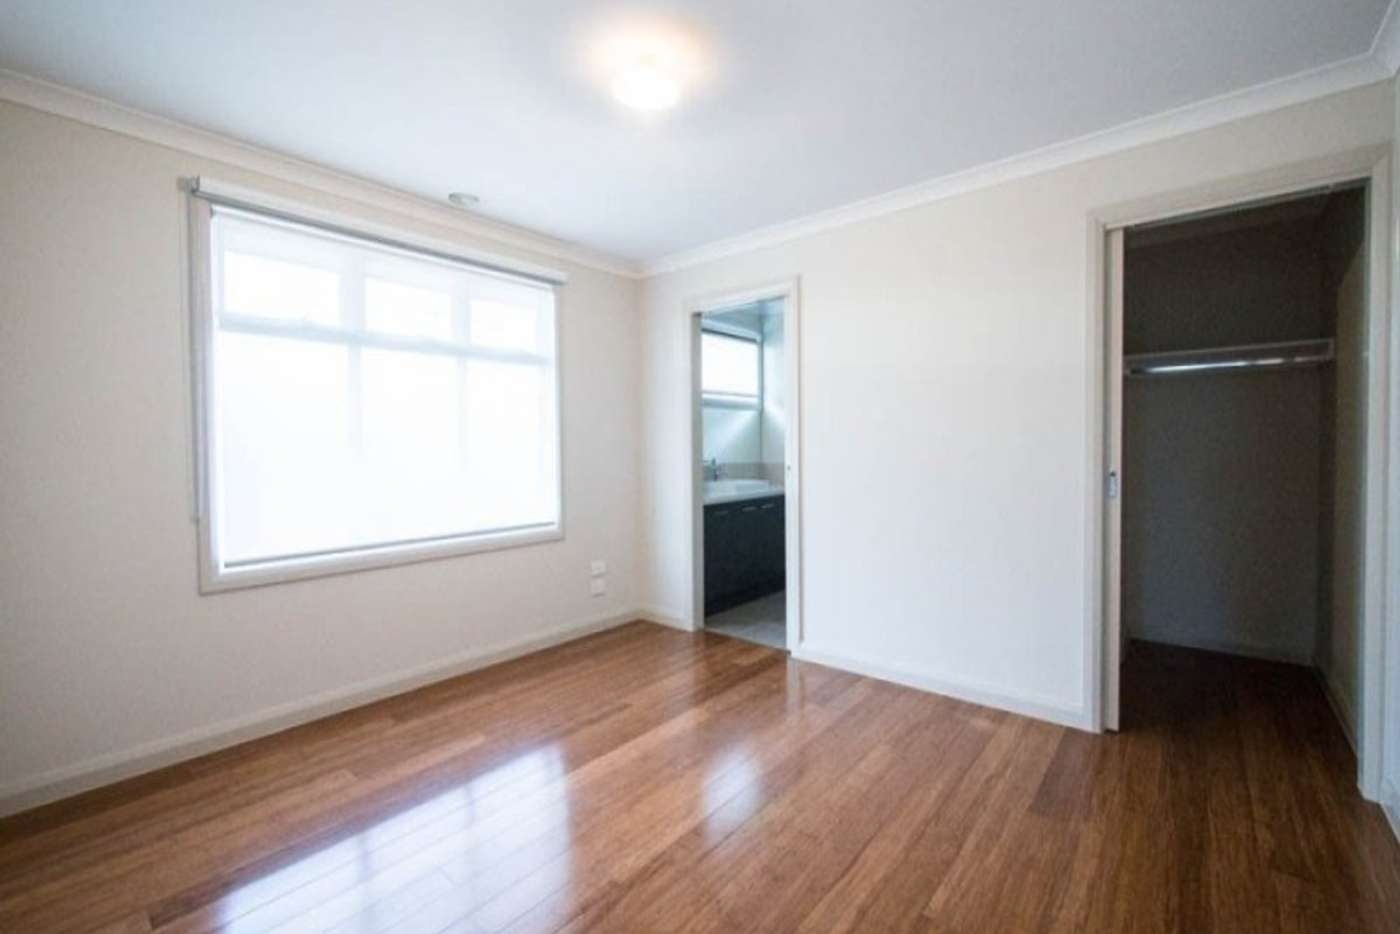 Seventh view of Homely house listing, 1/44 Stawell Street, Coburg VIC 3058